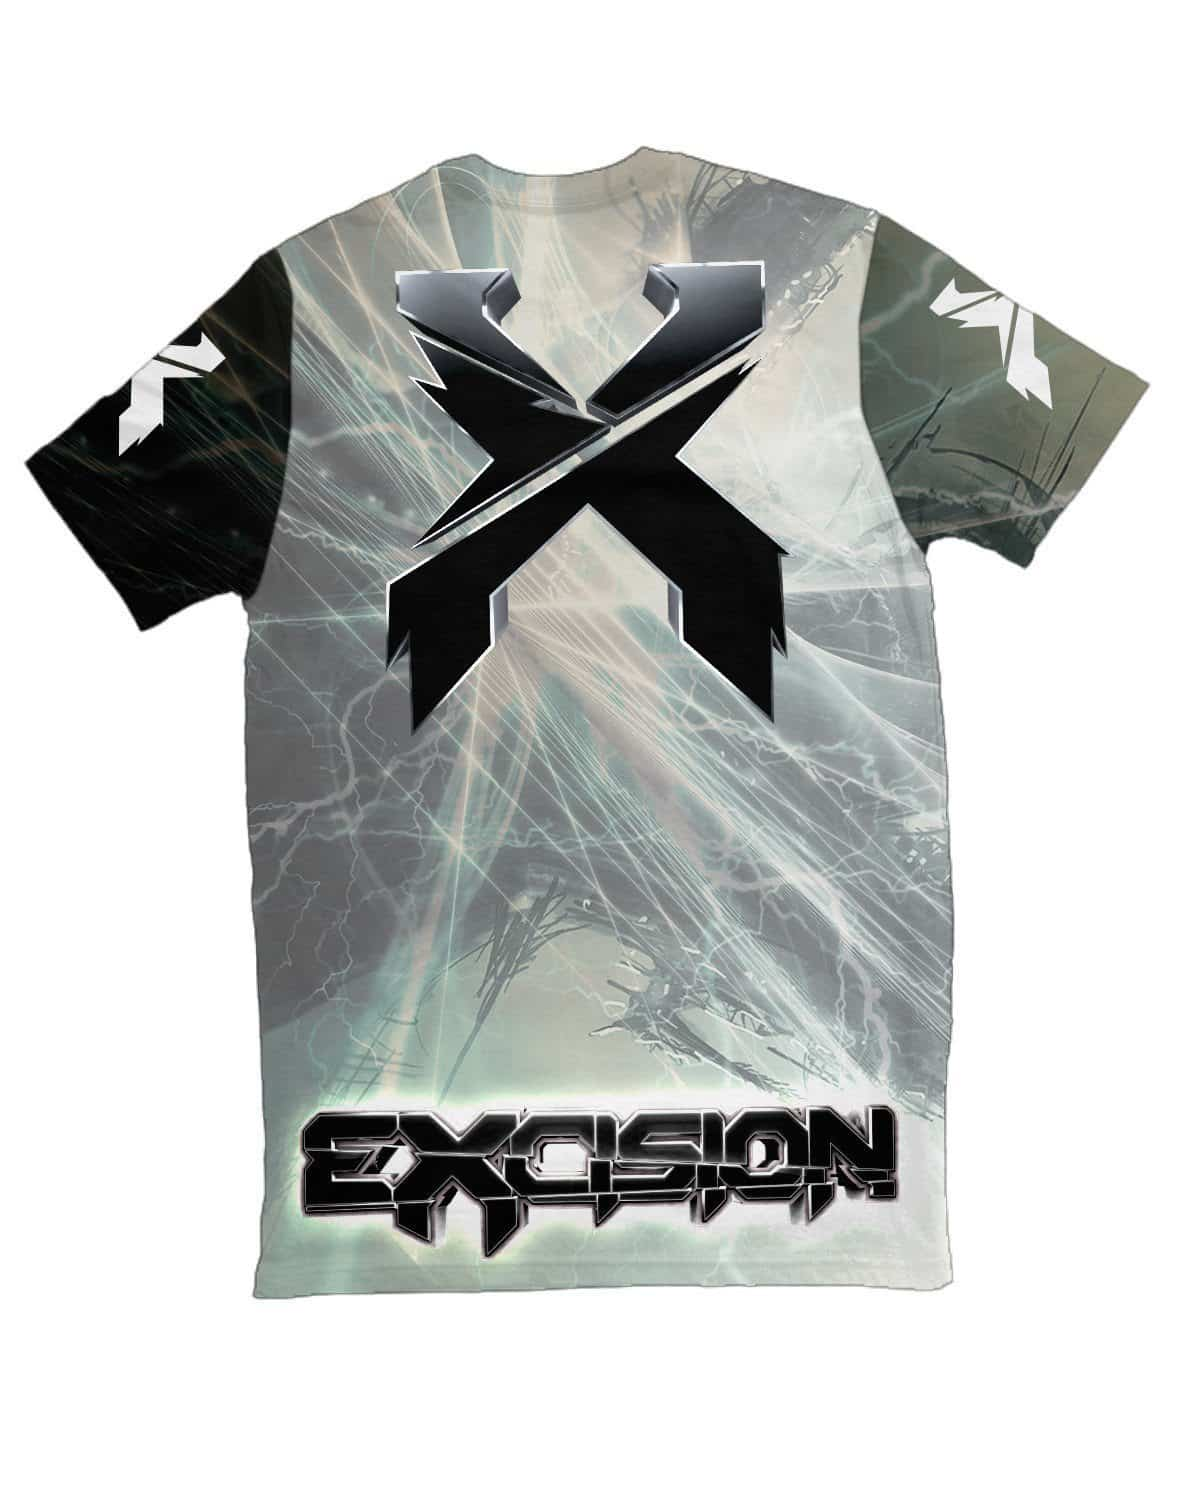 Excision Shambhala Mix 2016 Unisex Tee - Compilation Version